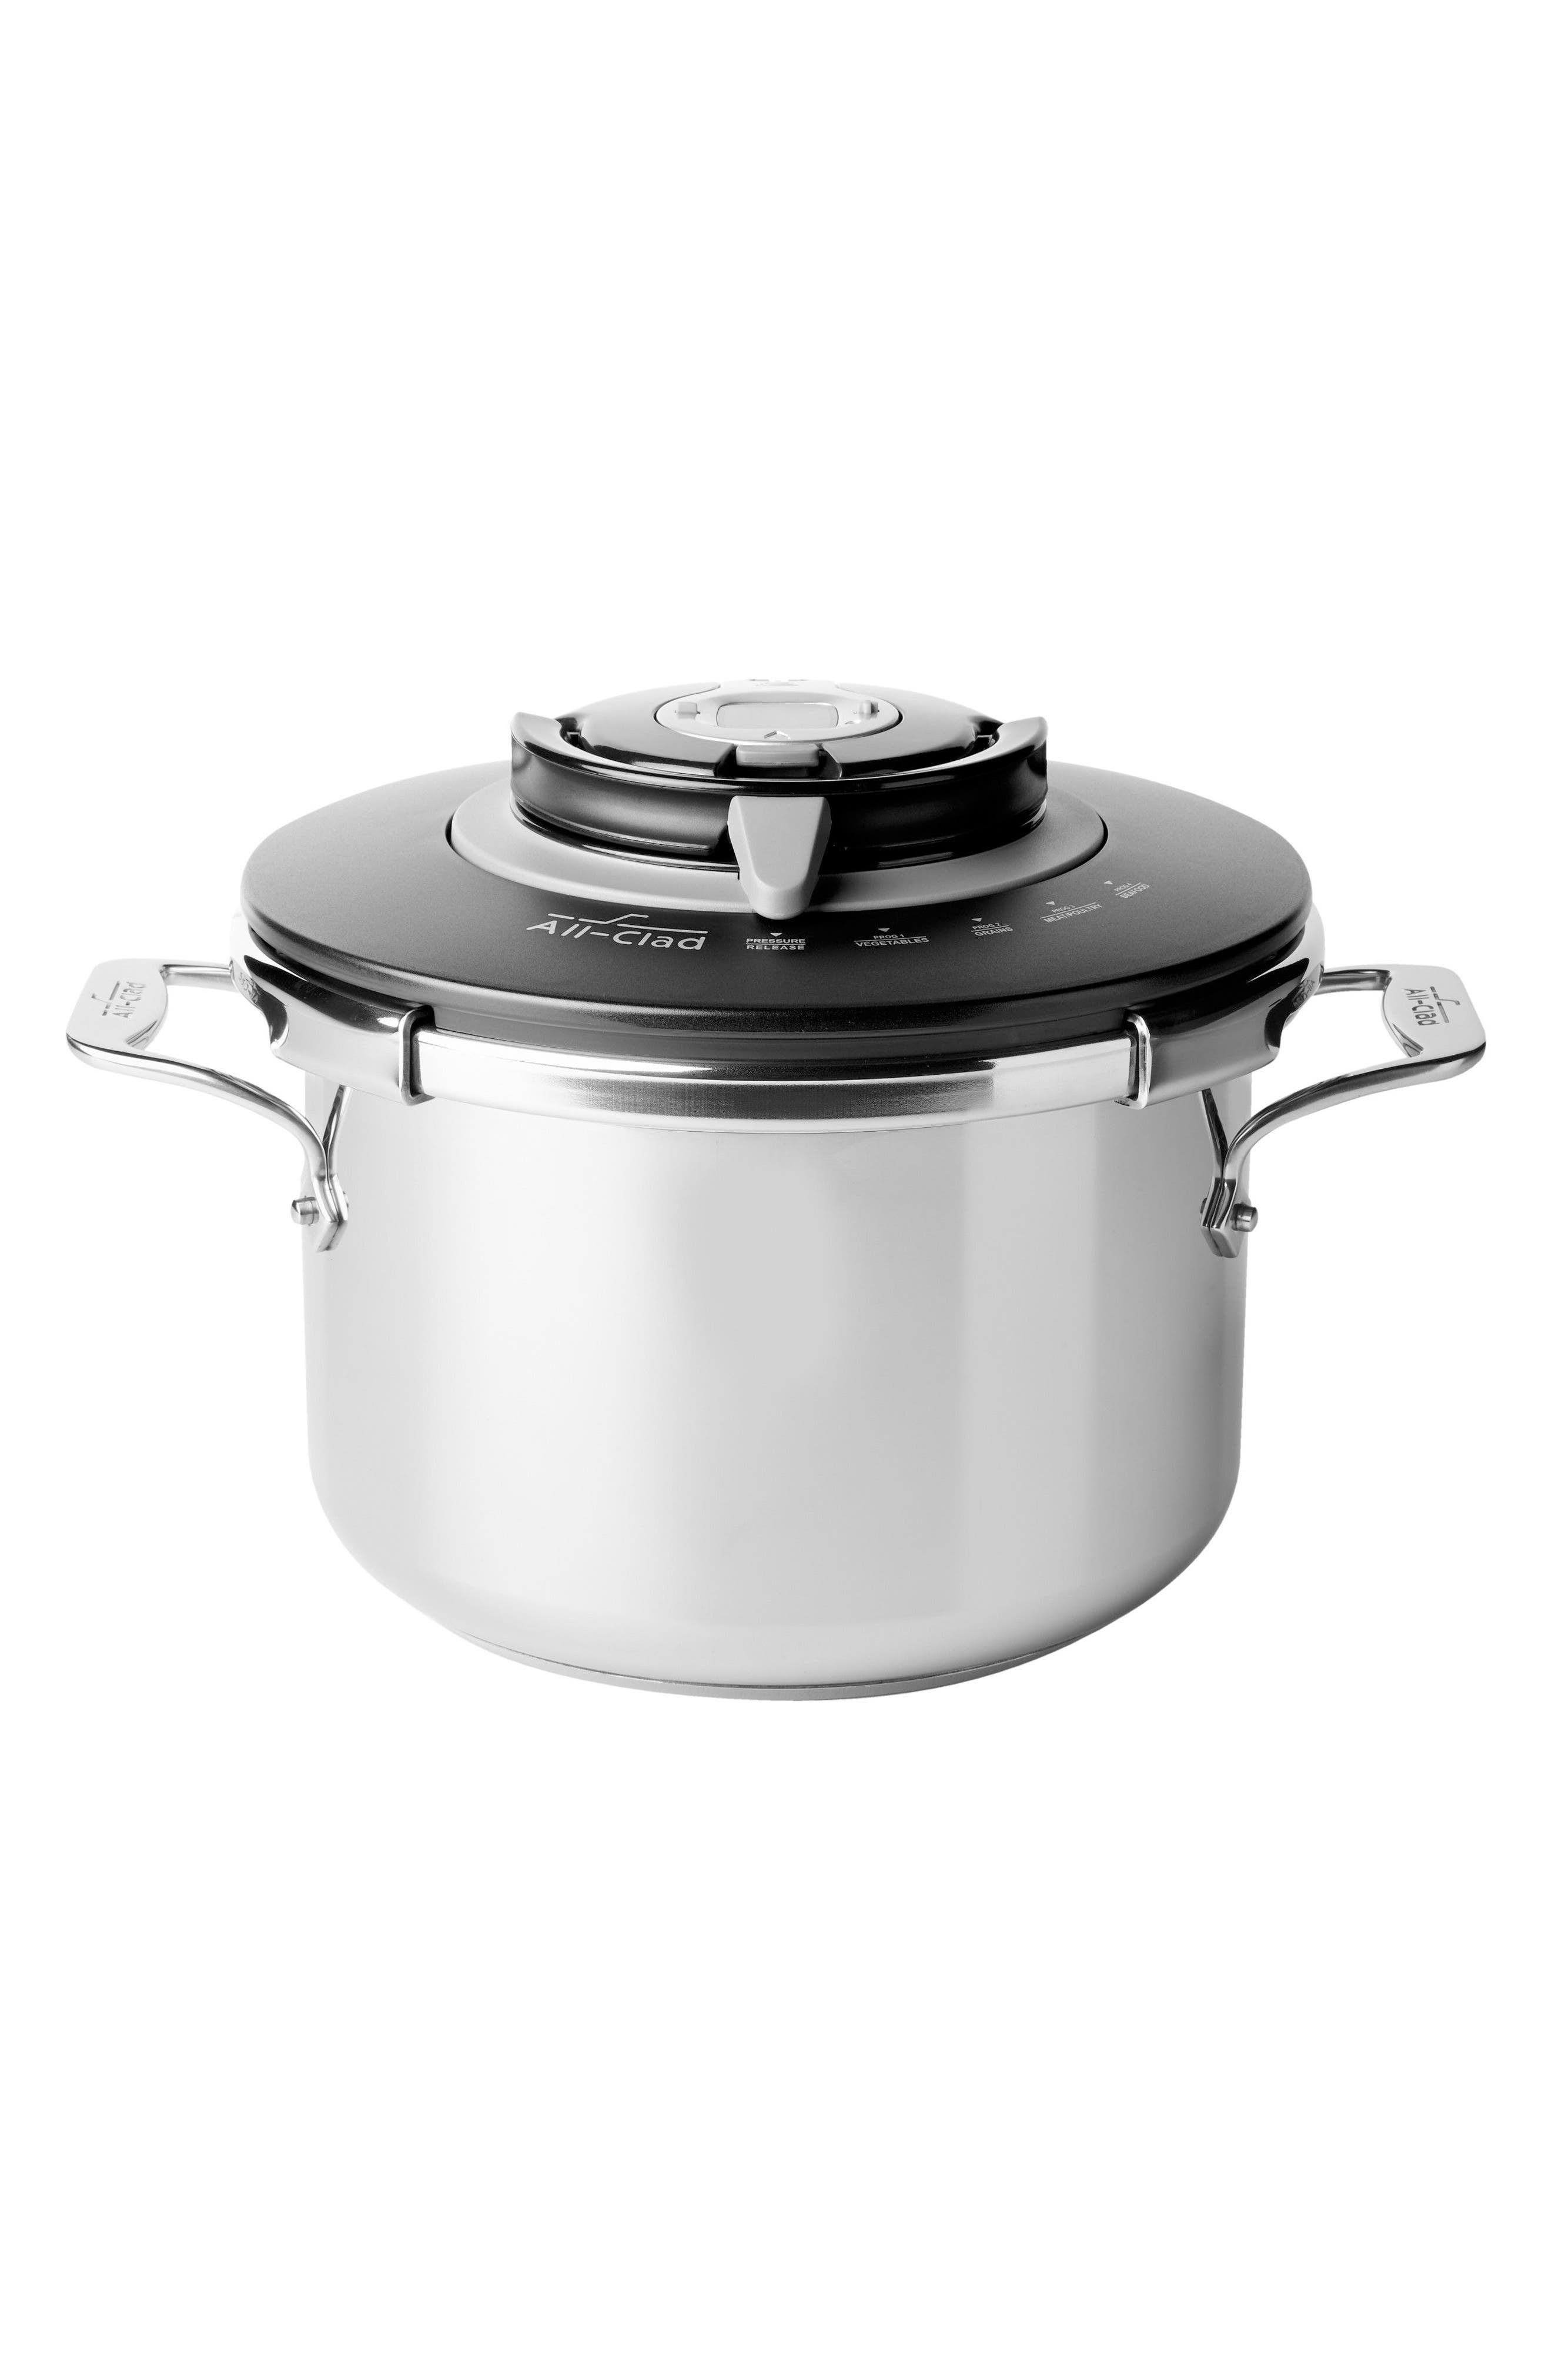 8.4-Quart Stovetop Pressure Cooker,                             Main thumbnail 1, color,                             STAINLESS